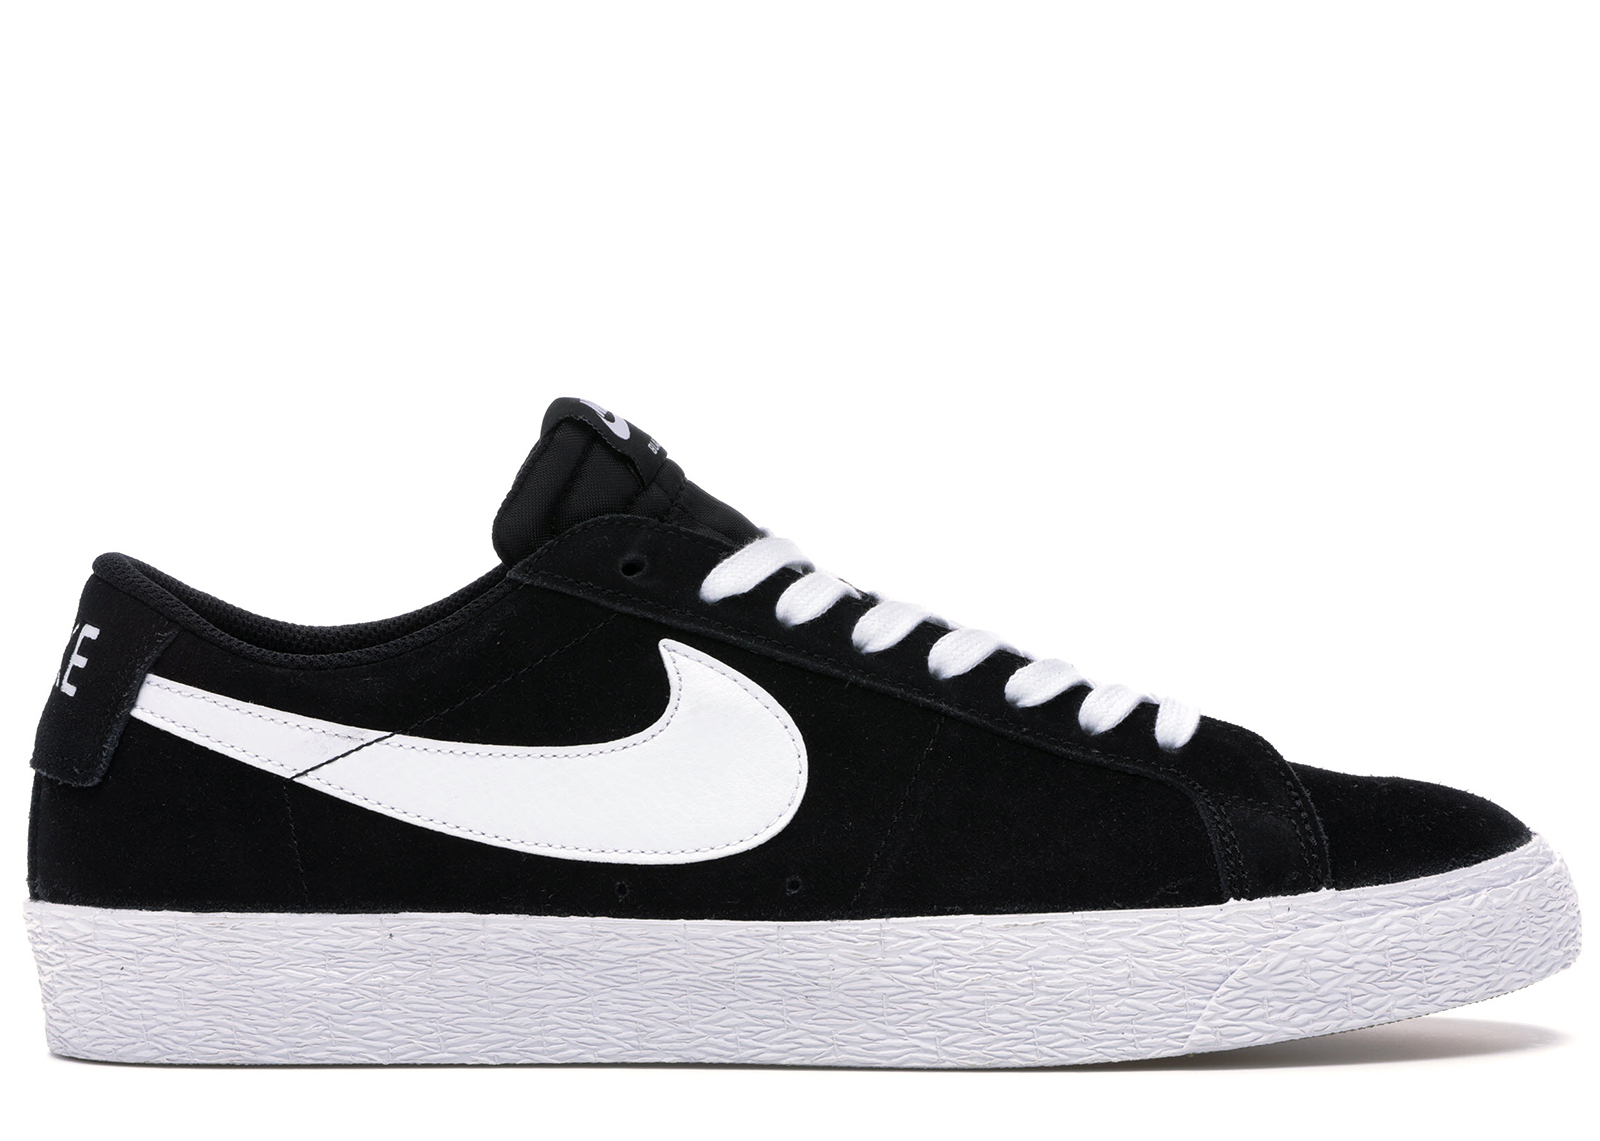 Nike SB Blazer Low Black White